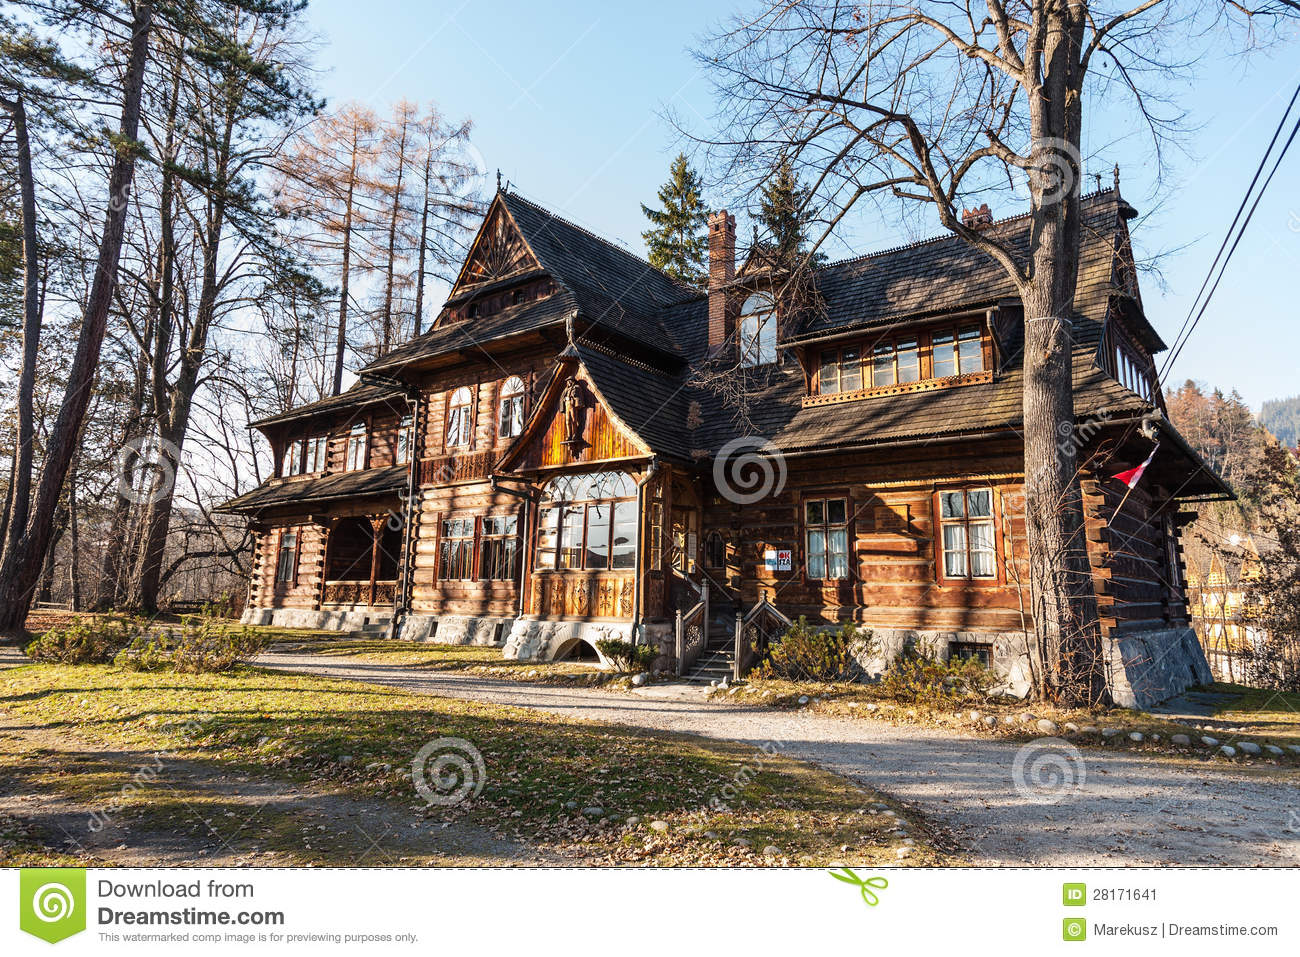 Old and well-known house in Zakopane